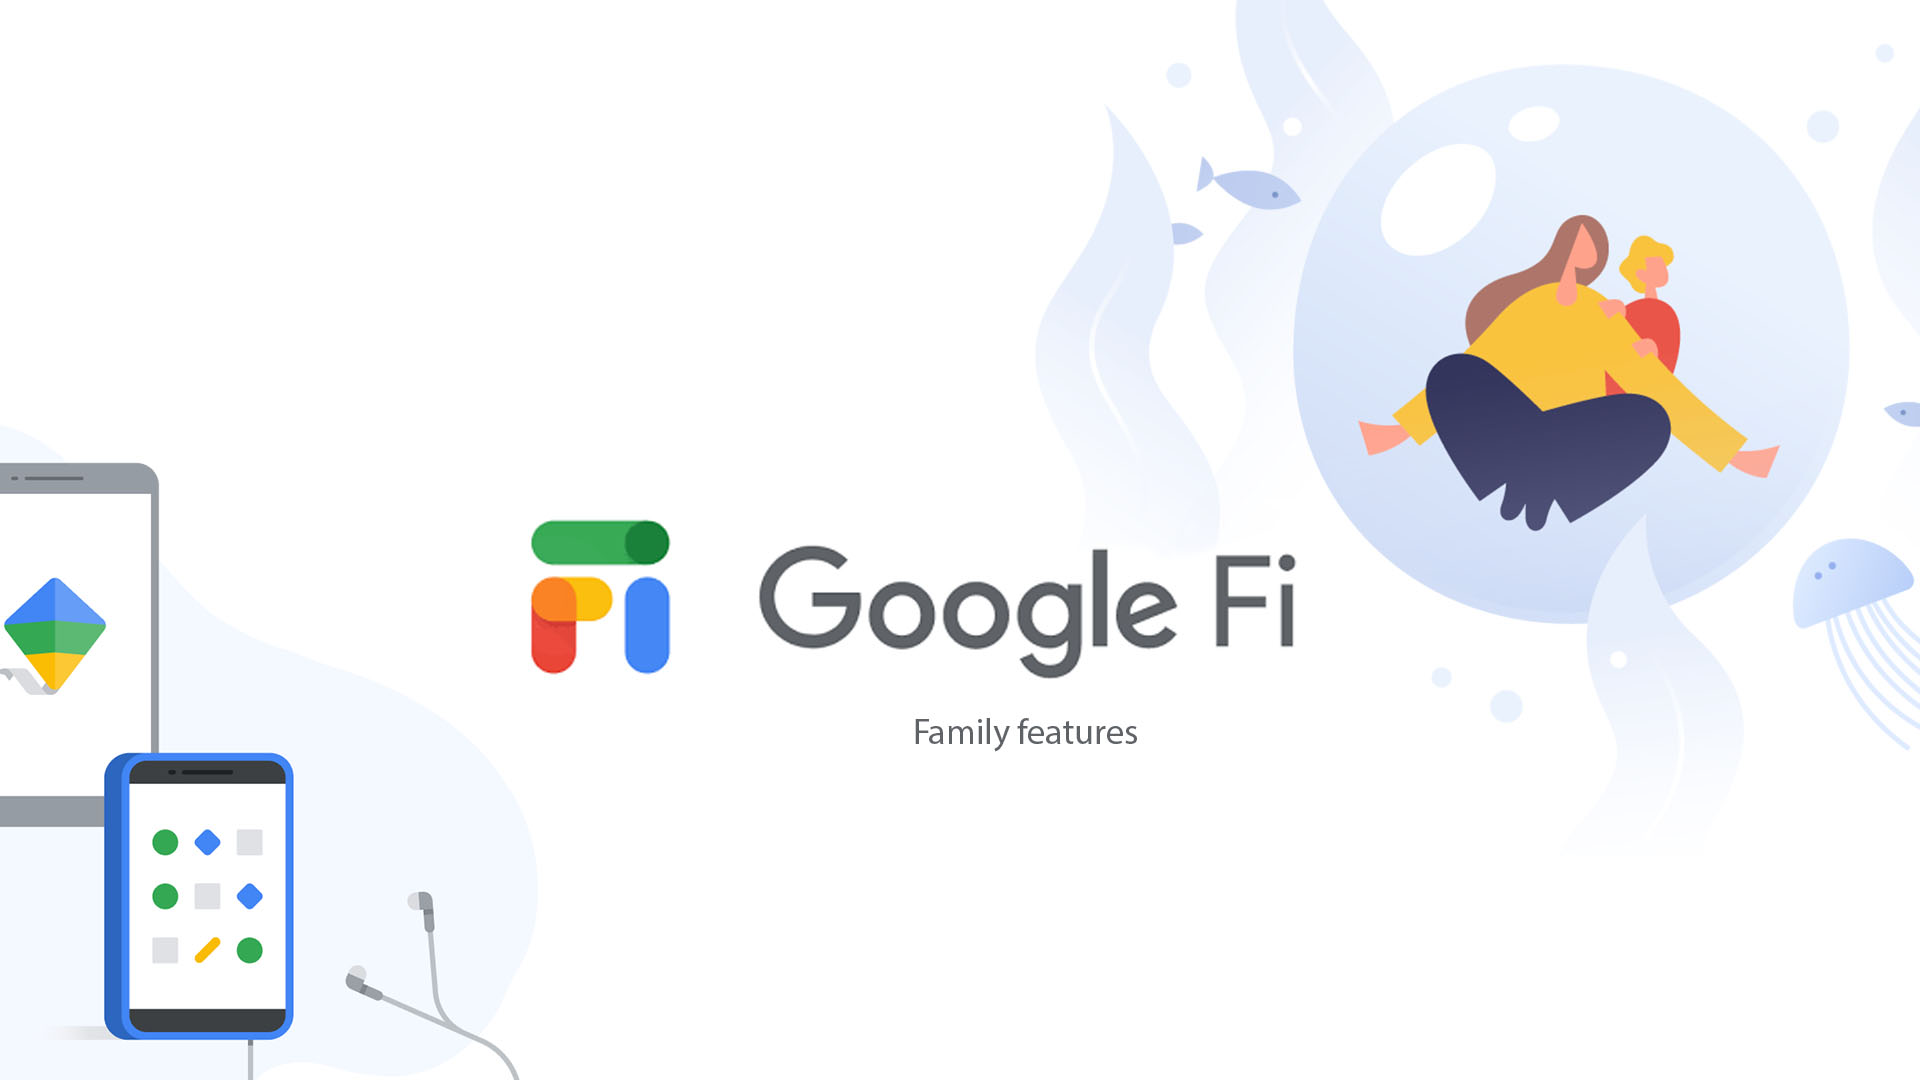 Google Fi rolling out new family features at no extra cost – unknown contact blocking, data budget, more